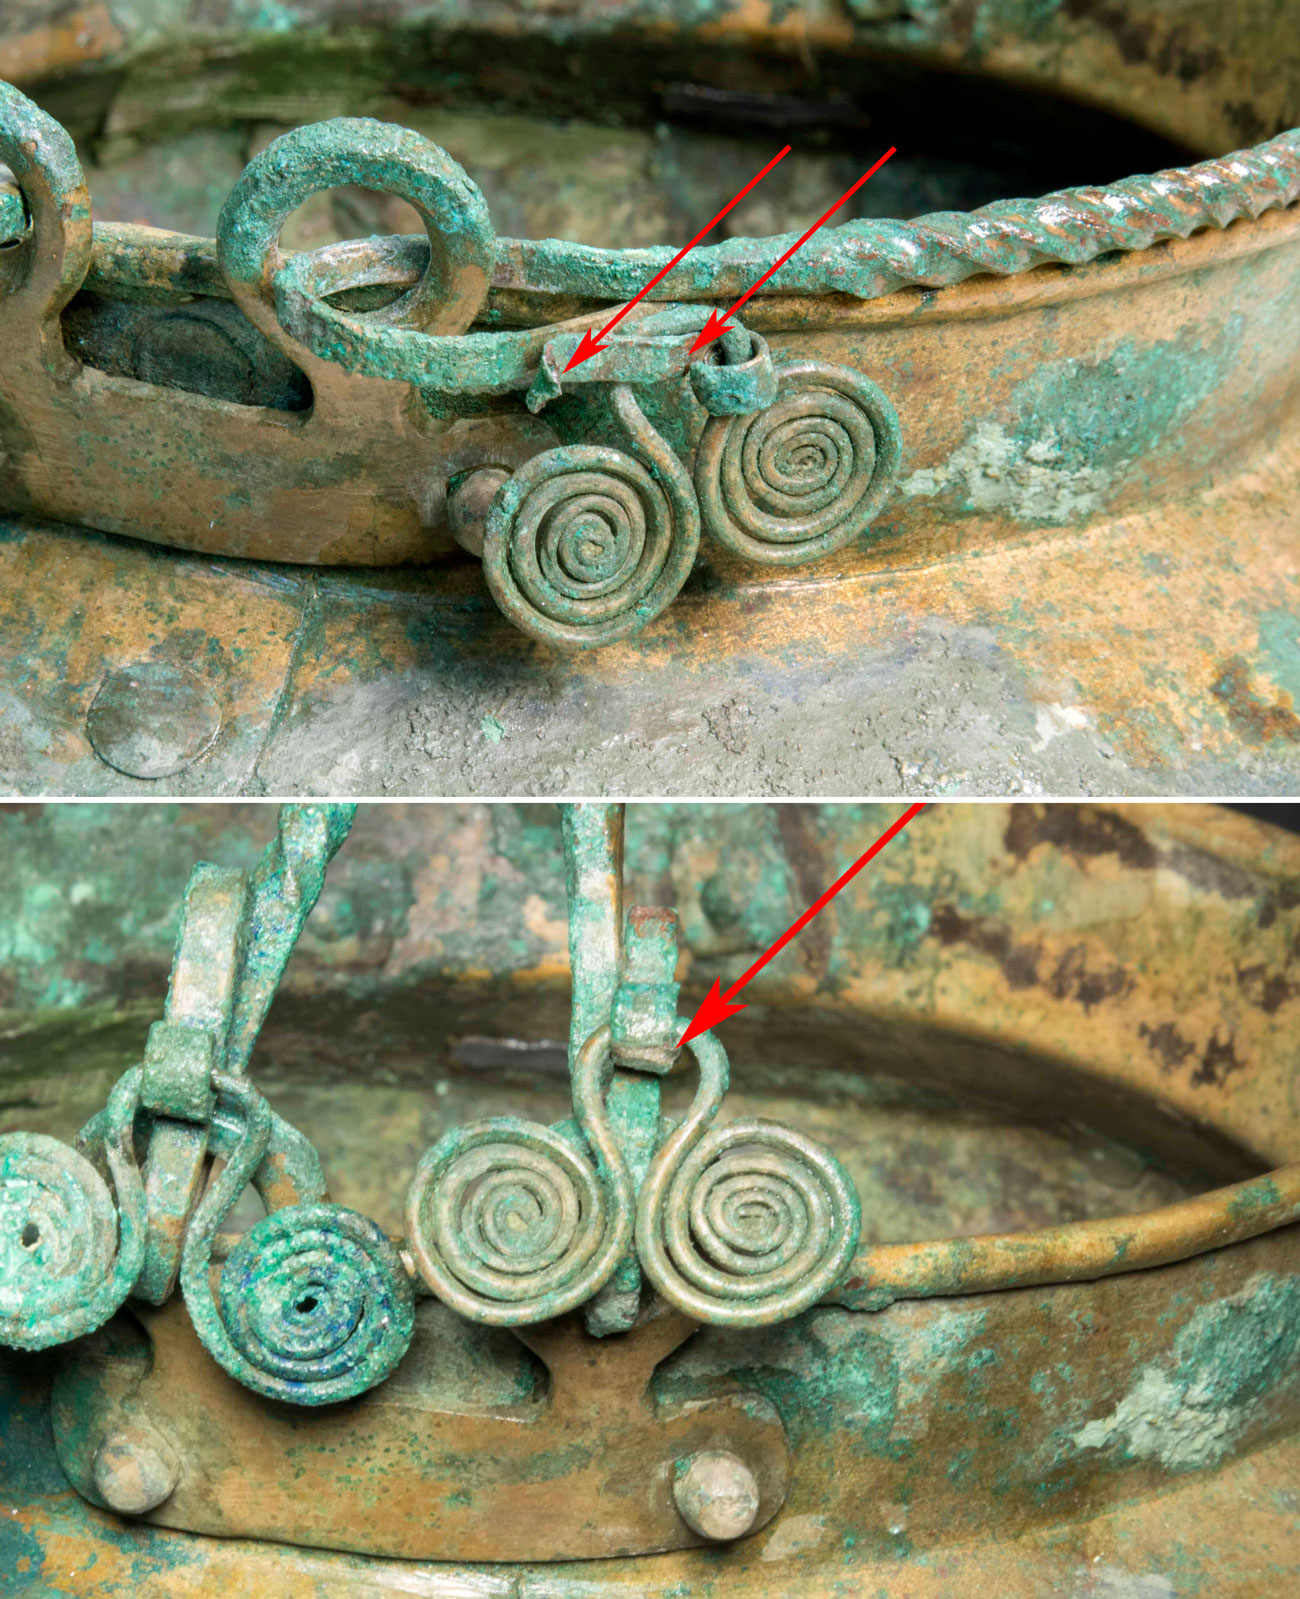 Two images showing aged metal worked into spirals. Arrows point at repairs.